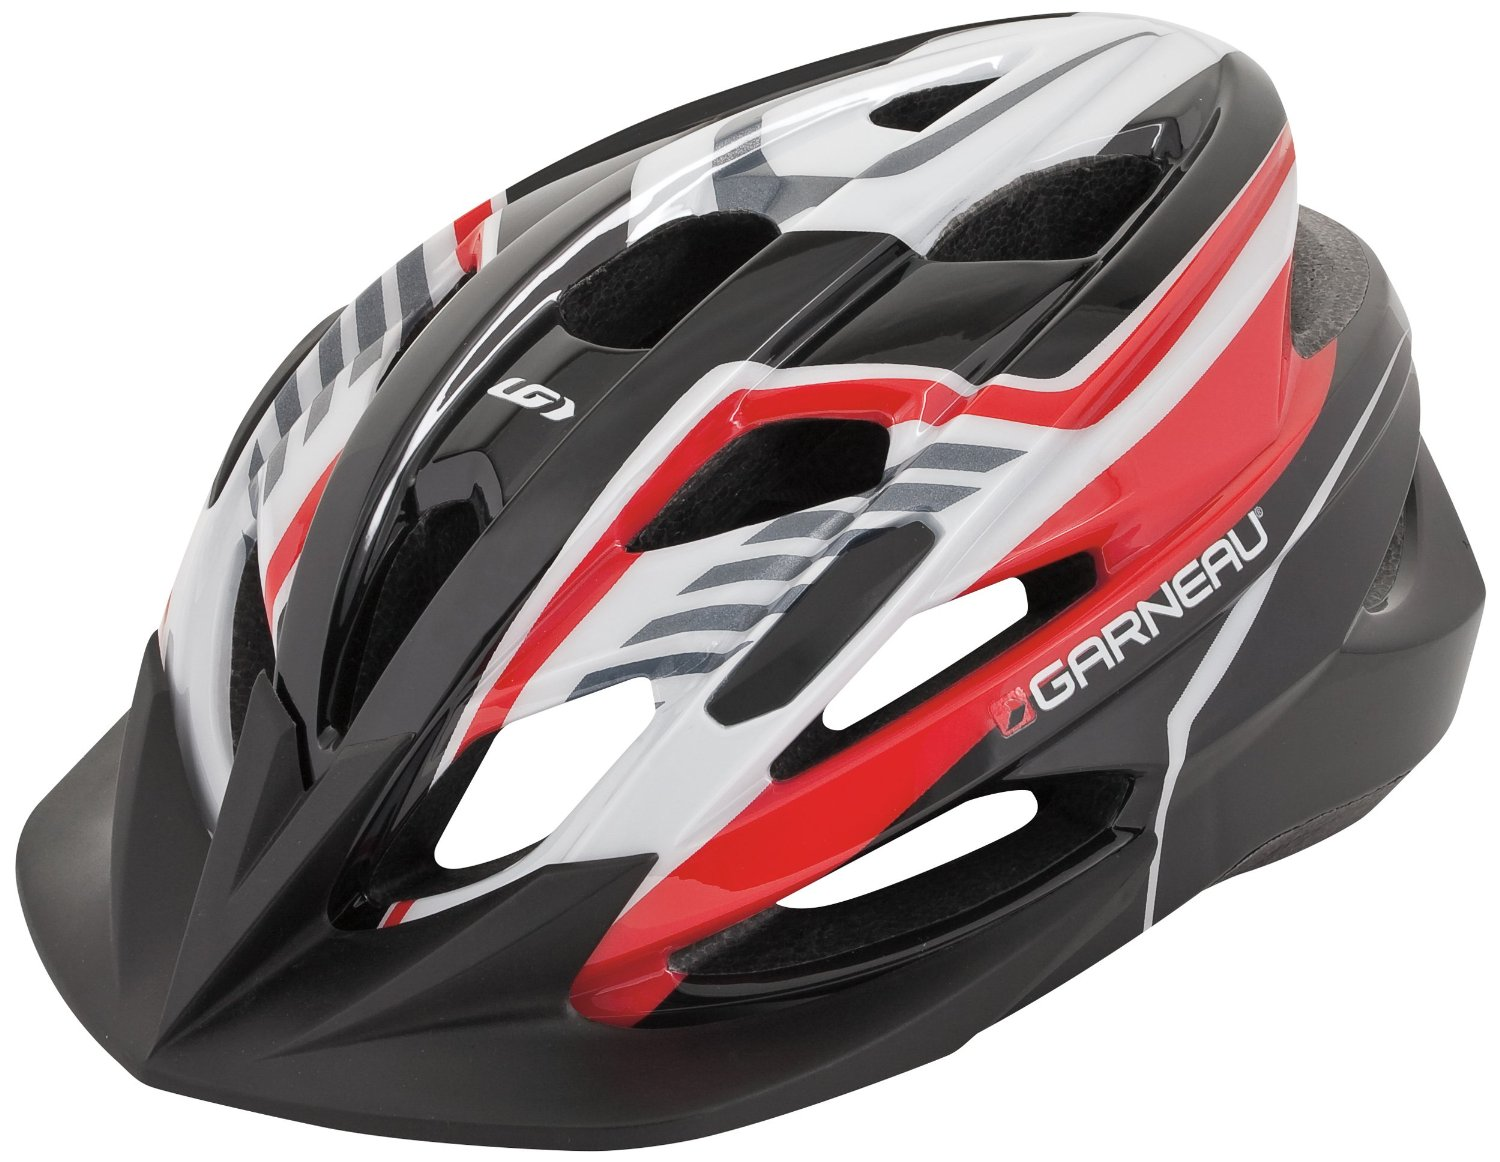 Colors of Garneau Bicycle Helmets